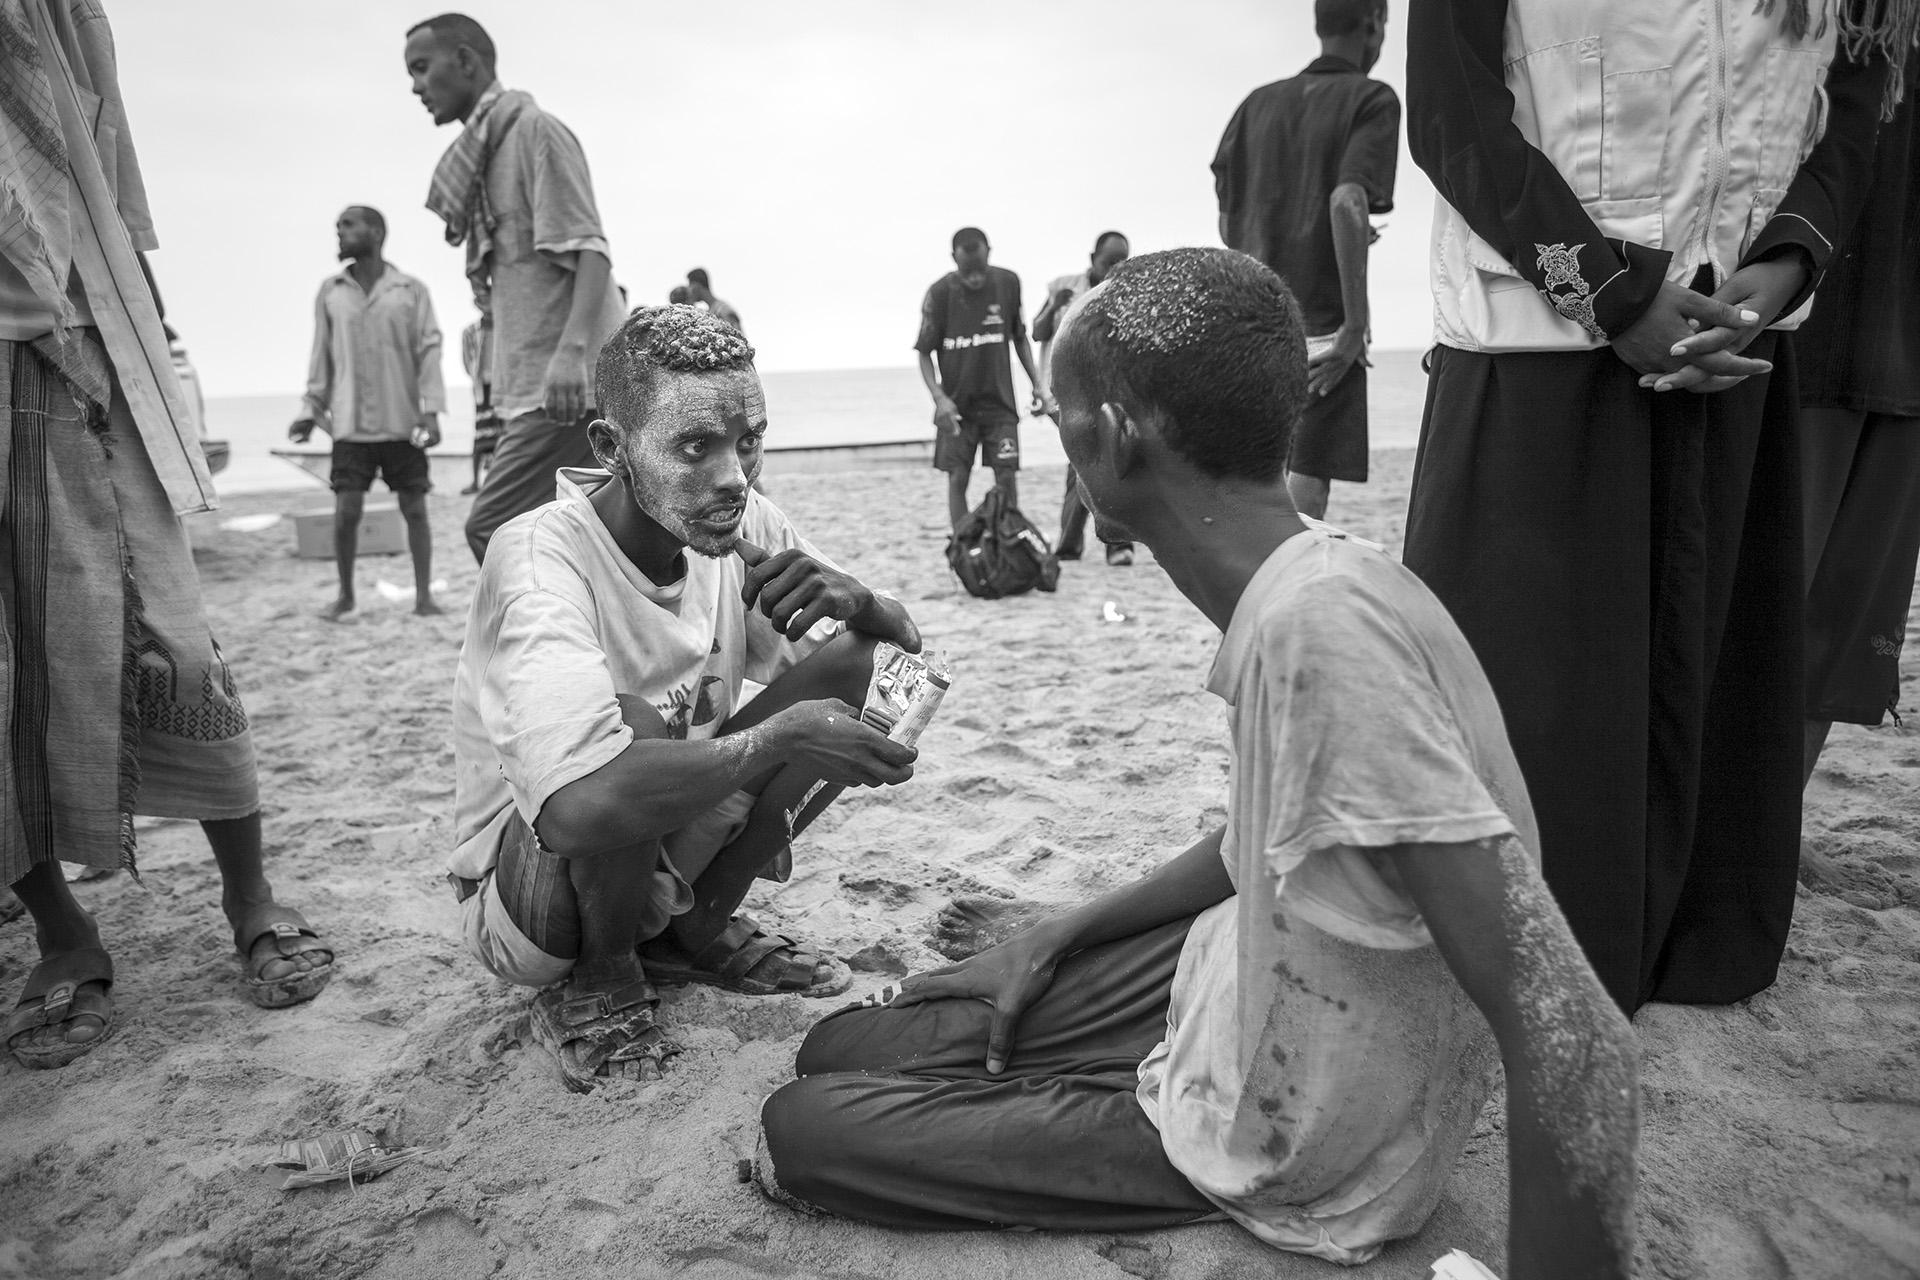 A Somali man offer his biscuit to another refugee at the beach after landing.